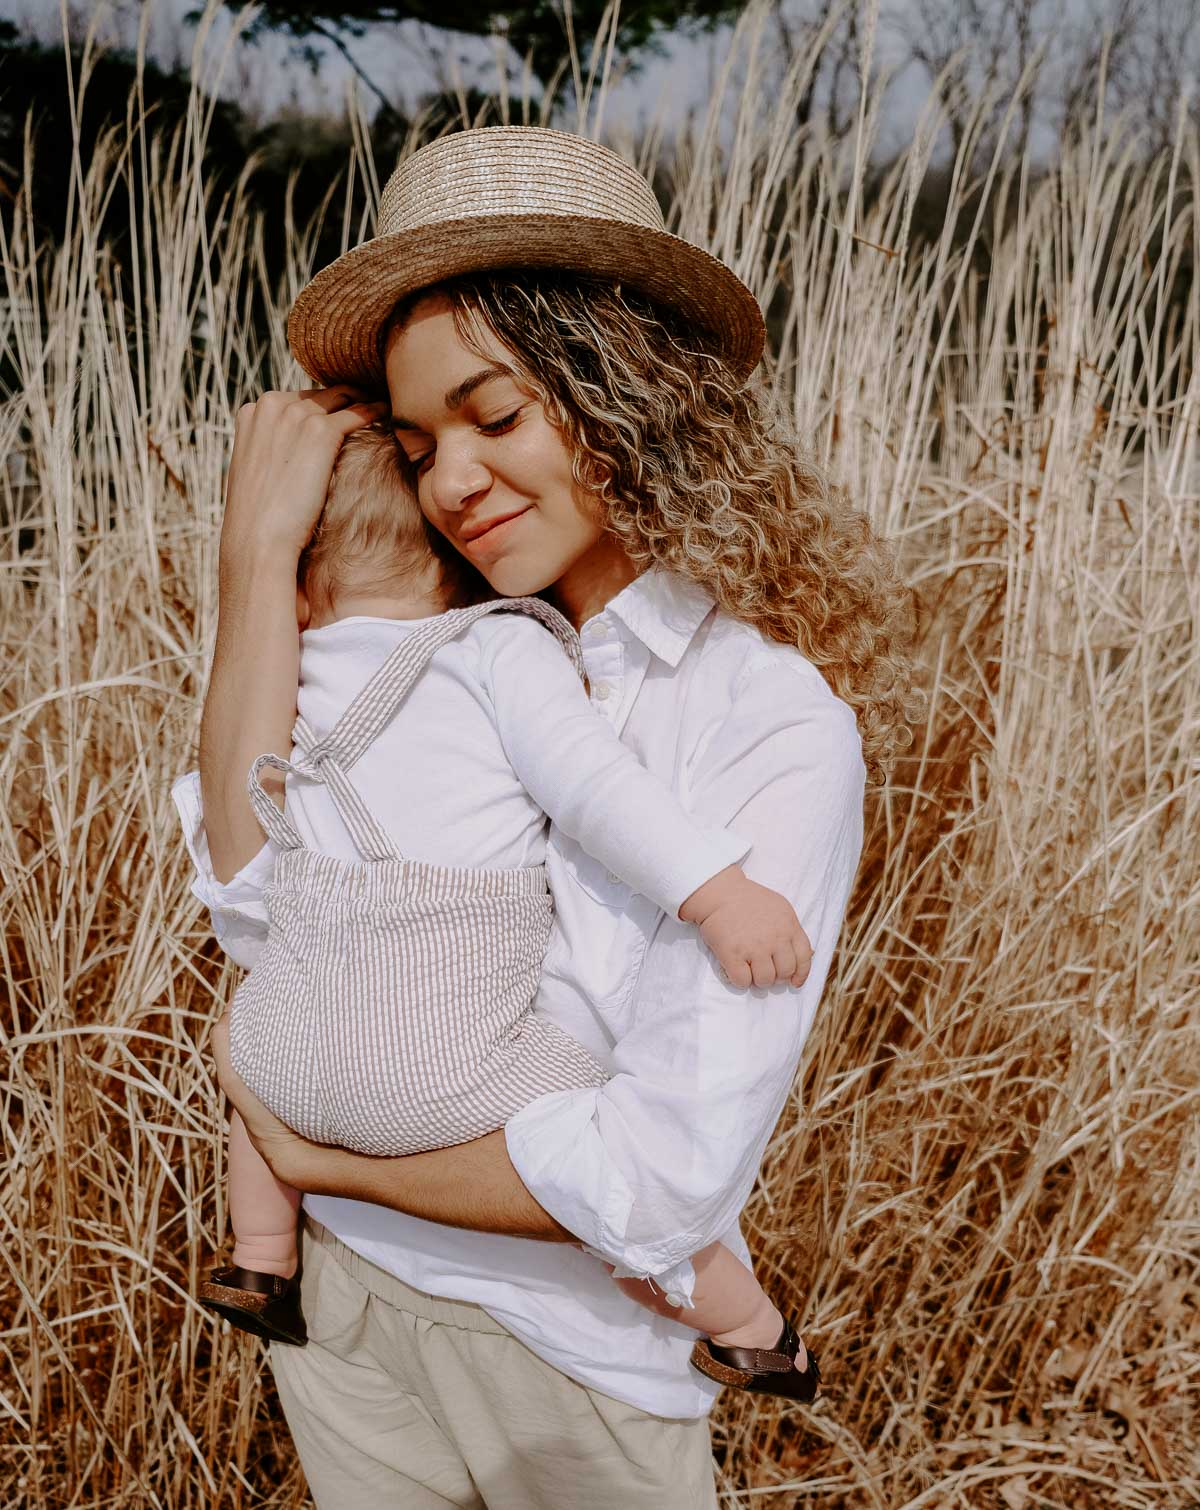 Summer family pictures featuring mother and son photography! Carolyn from My Chic Obsession lets you know more about her blog and family life!